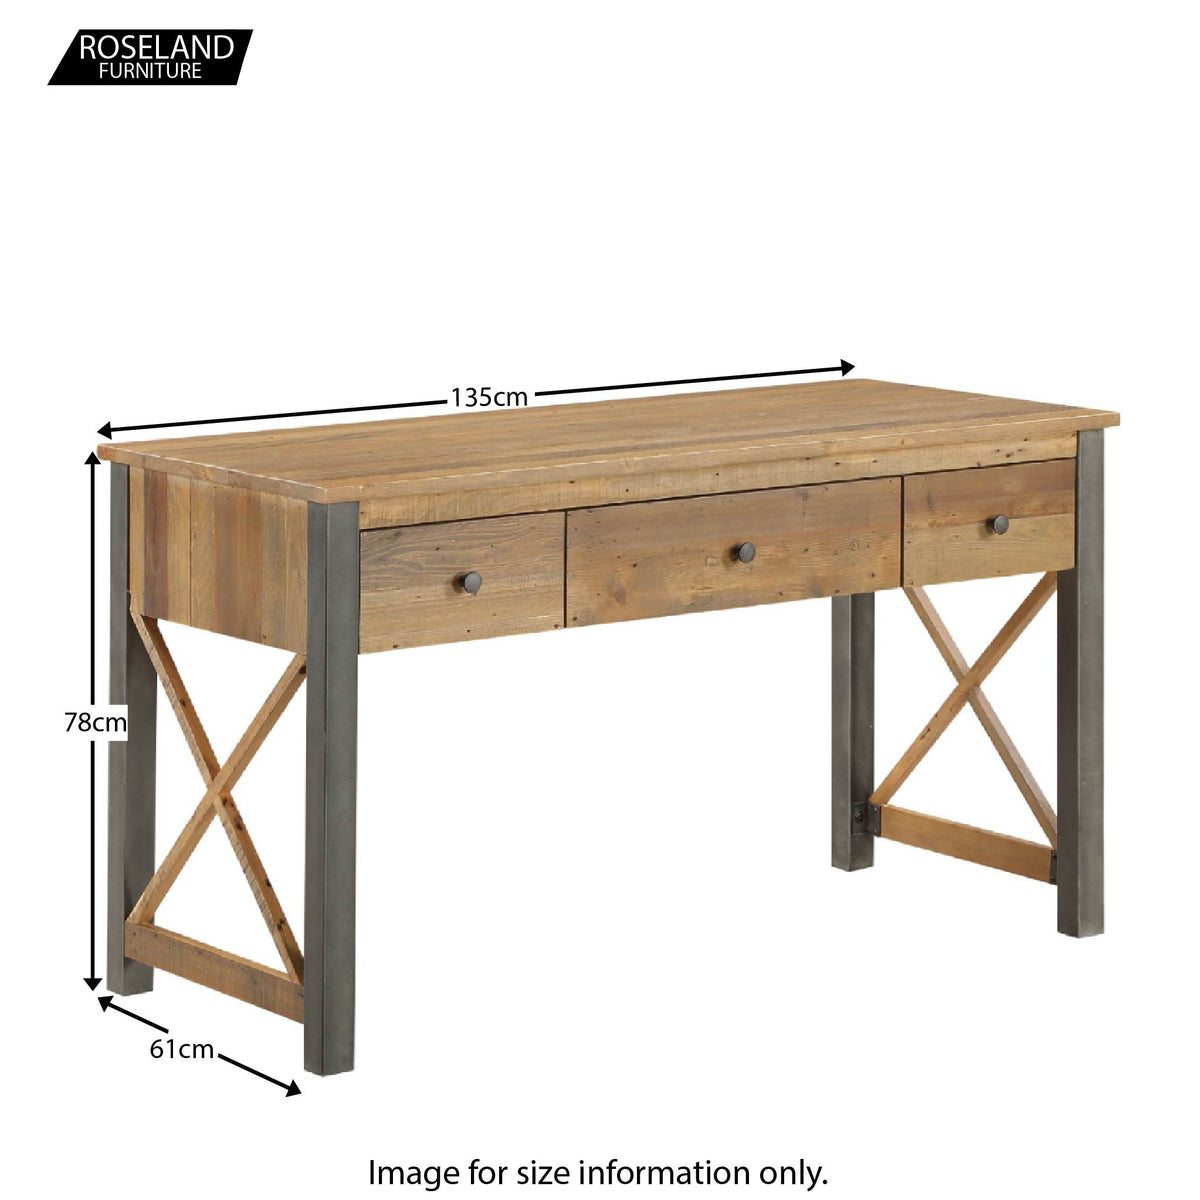 Dimensions for  Urban Elegance Reclaimed Wood home Office Desk 78 x 135 x 61 cm